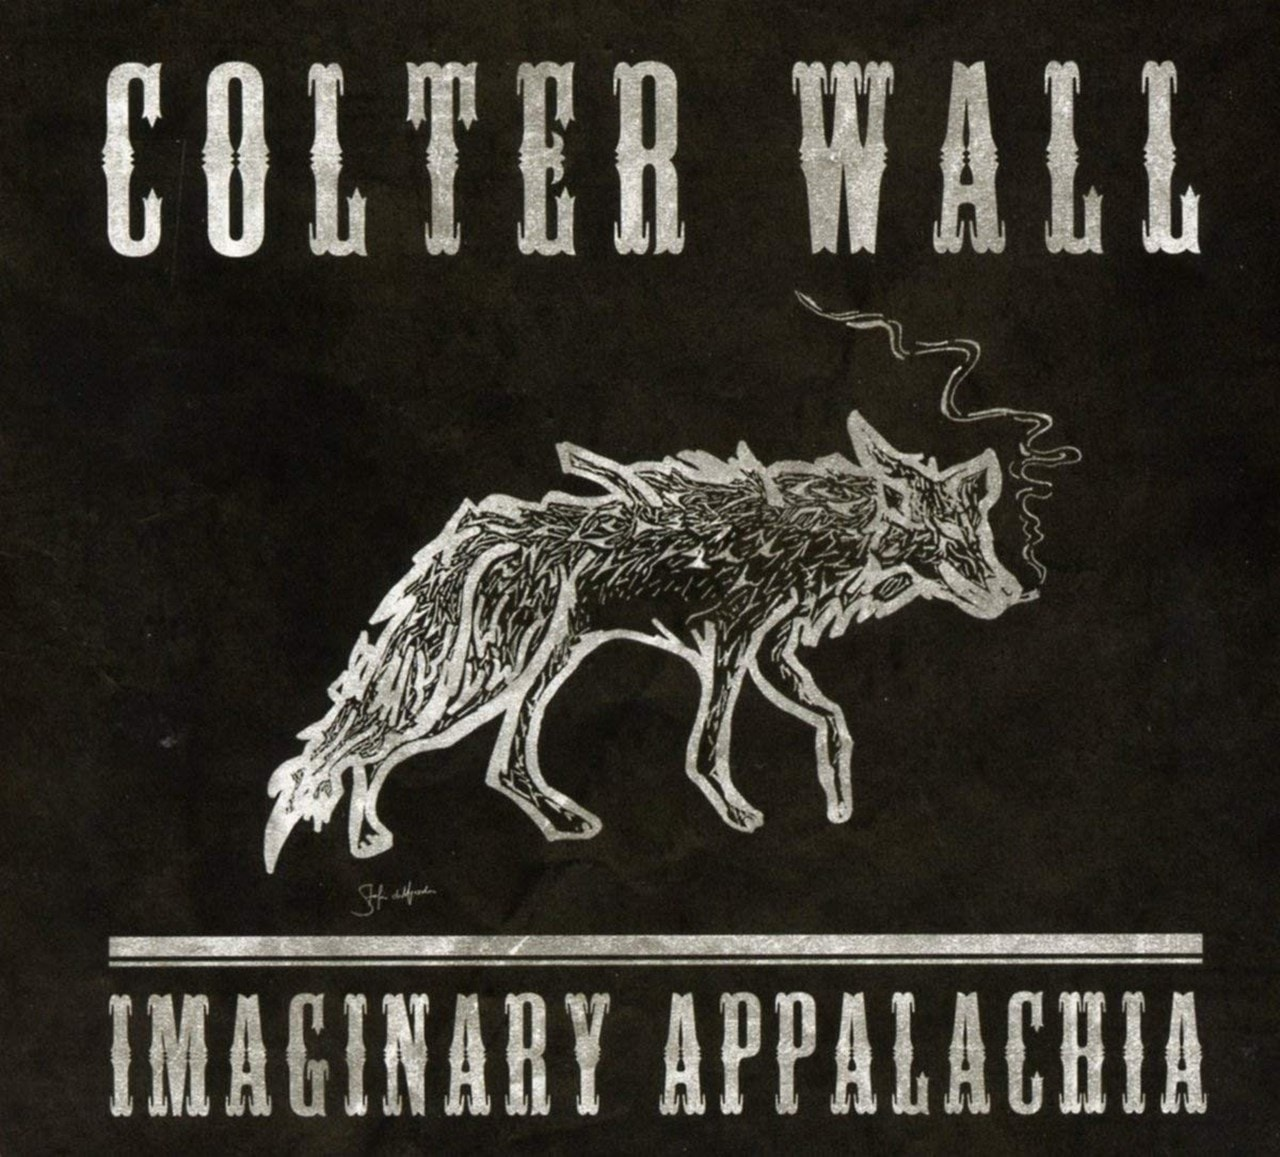 Imaginary Appalachia - 1